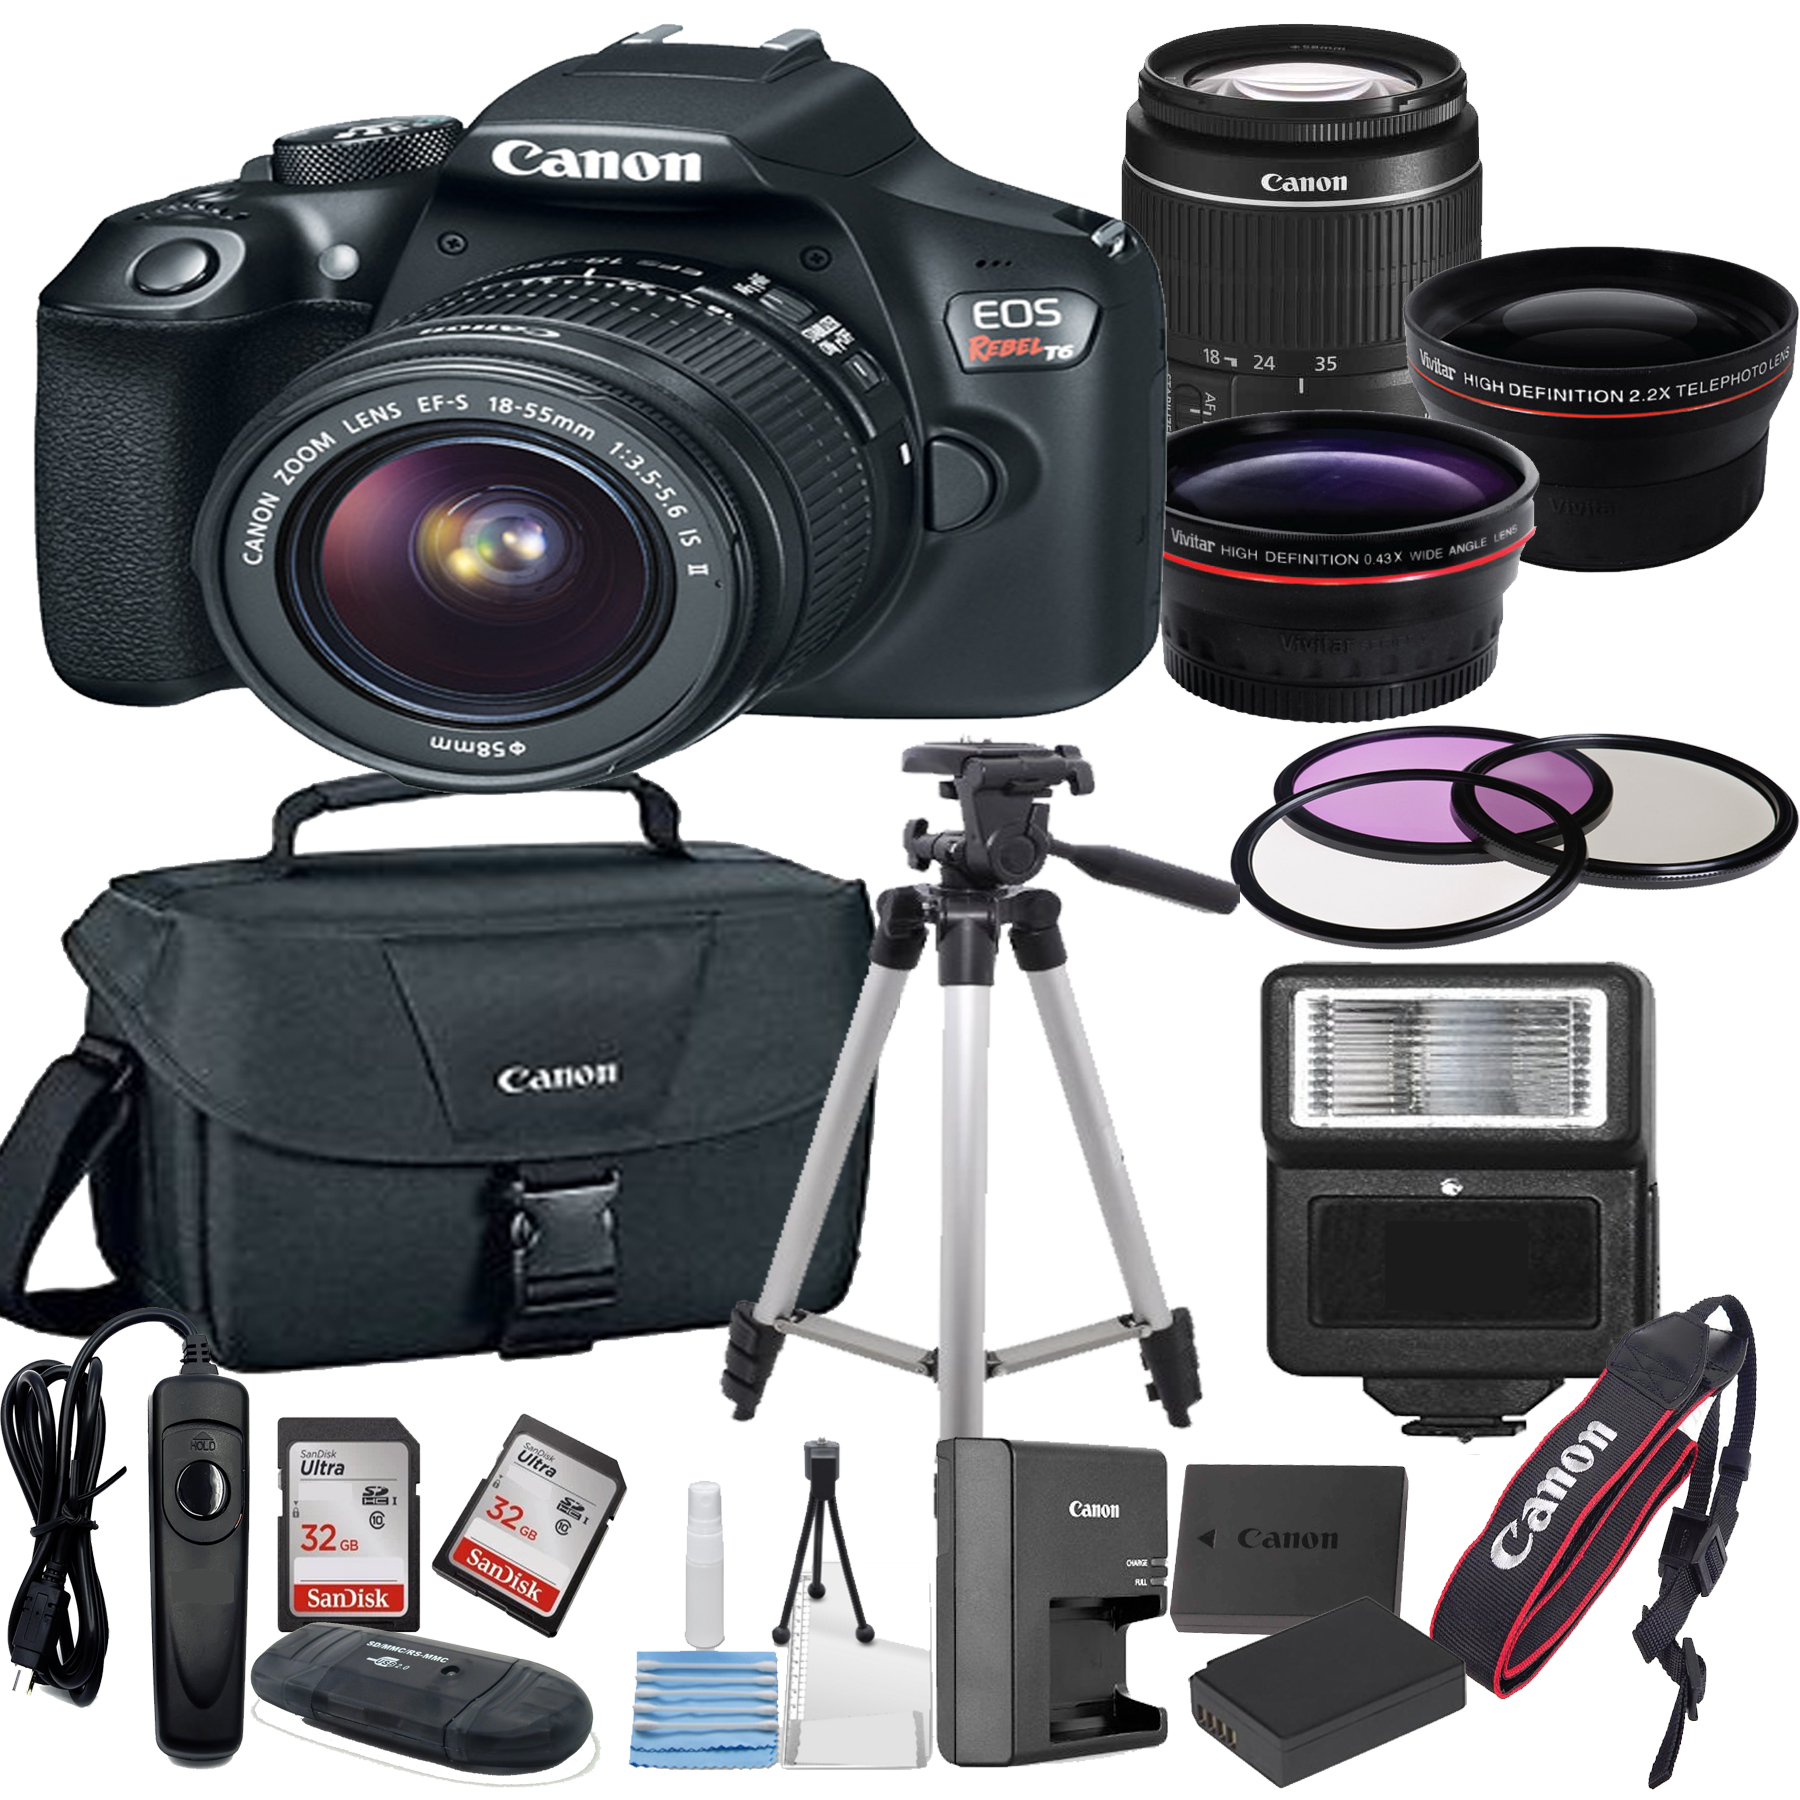 Canon EOS Rebel T6 Digital SLR Camera w/ EF-S 18-55mm Bundle includes Camera, Lenses, Filters, Bag, Memory Cards, Tripod, Flash, Remote Shutter , Cleaning Kit, Replacement Battery ,  Tripod ,and More